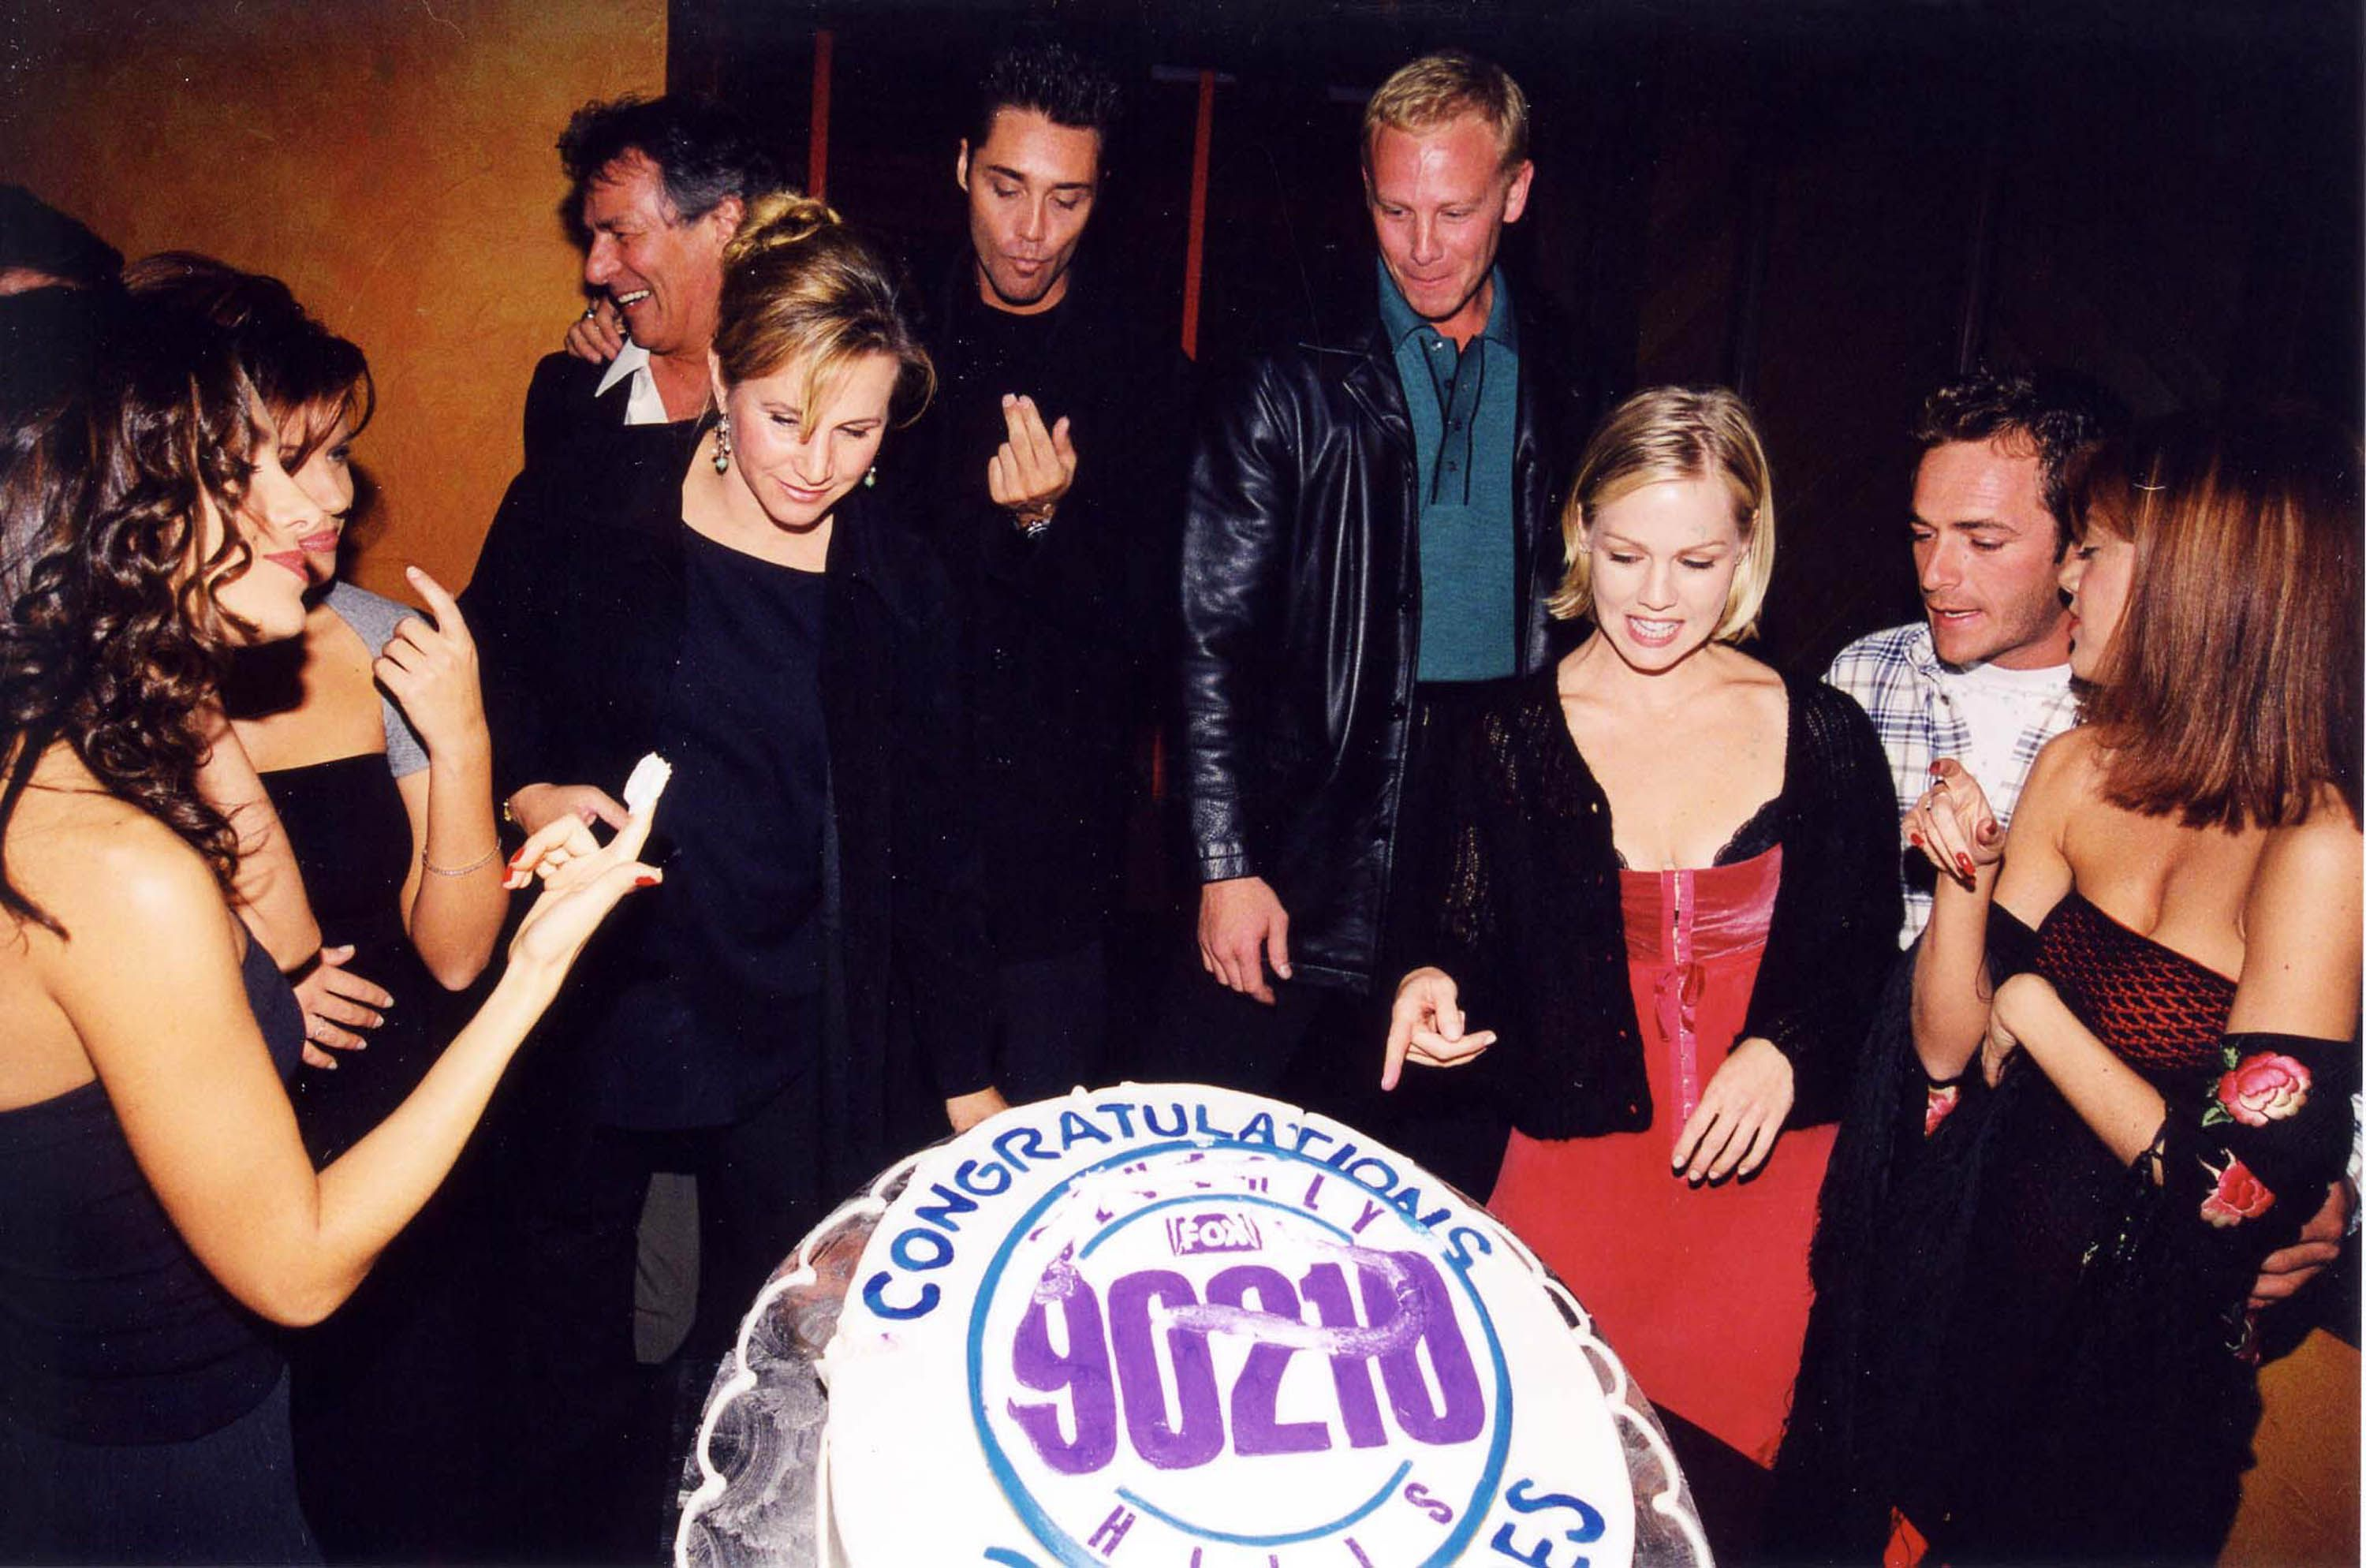 Gabrielle Carteris, Vincent Young, Ian Ziering, Jennie Garth and Perry attend the Beverly Hills, 90210 250th episode celebration in 1998.